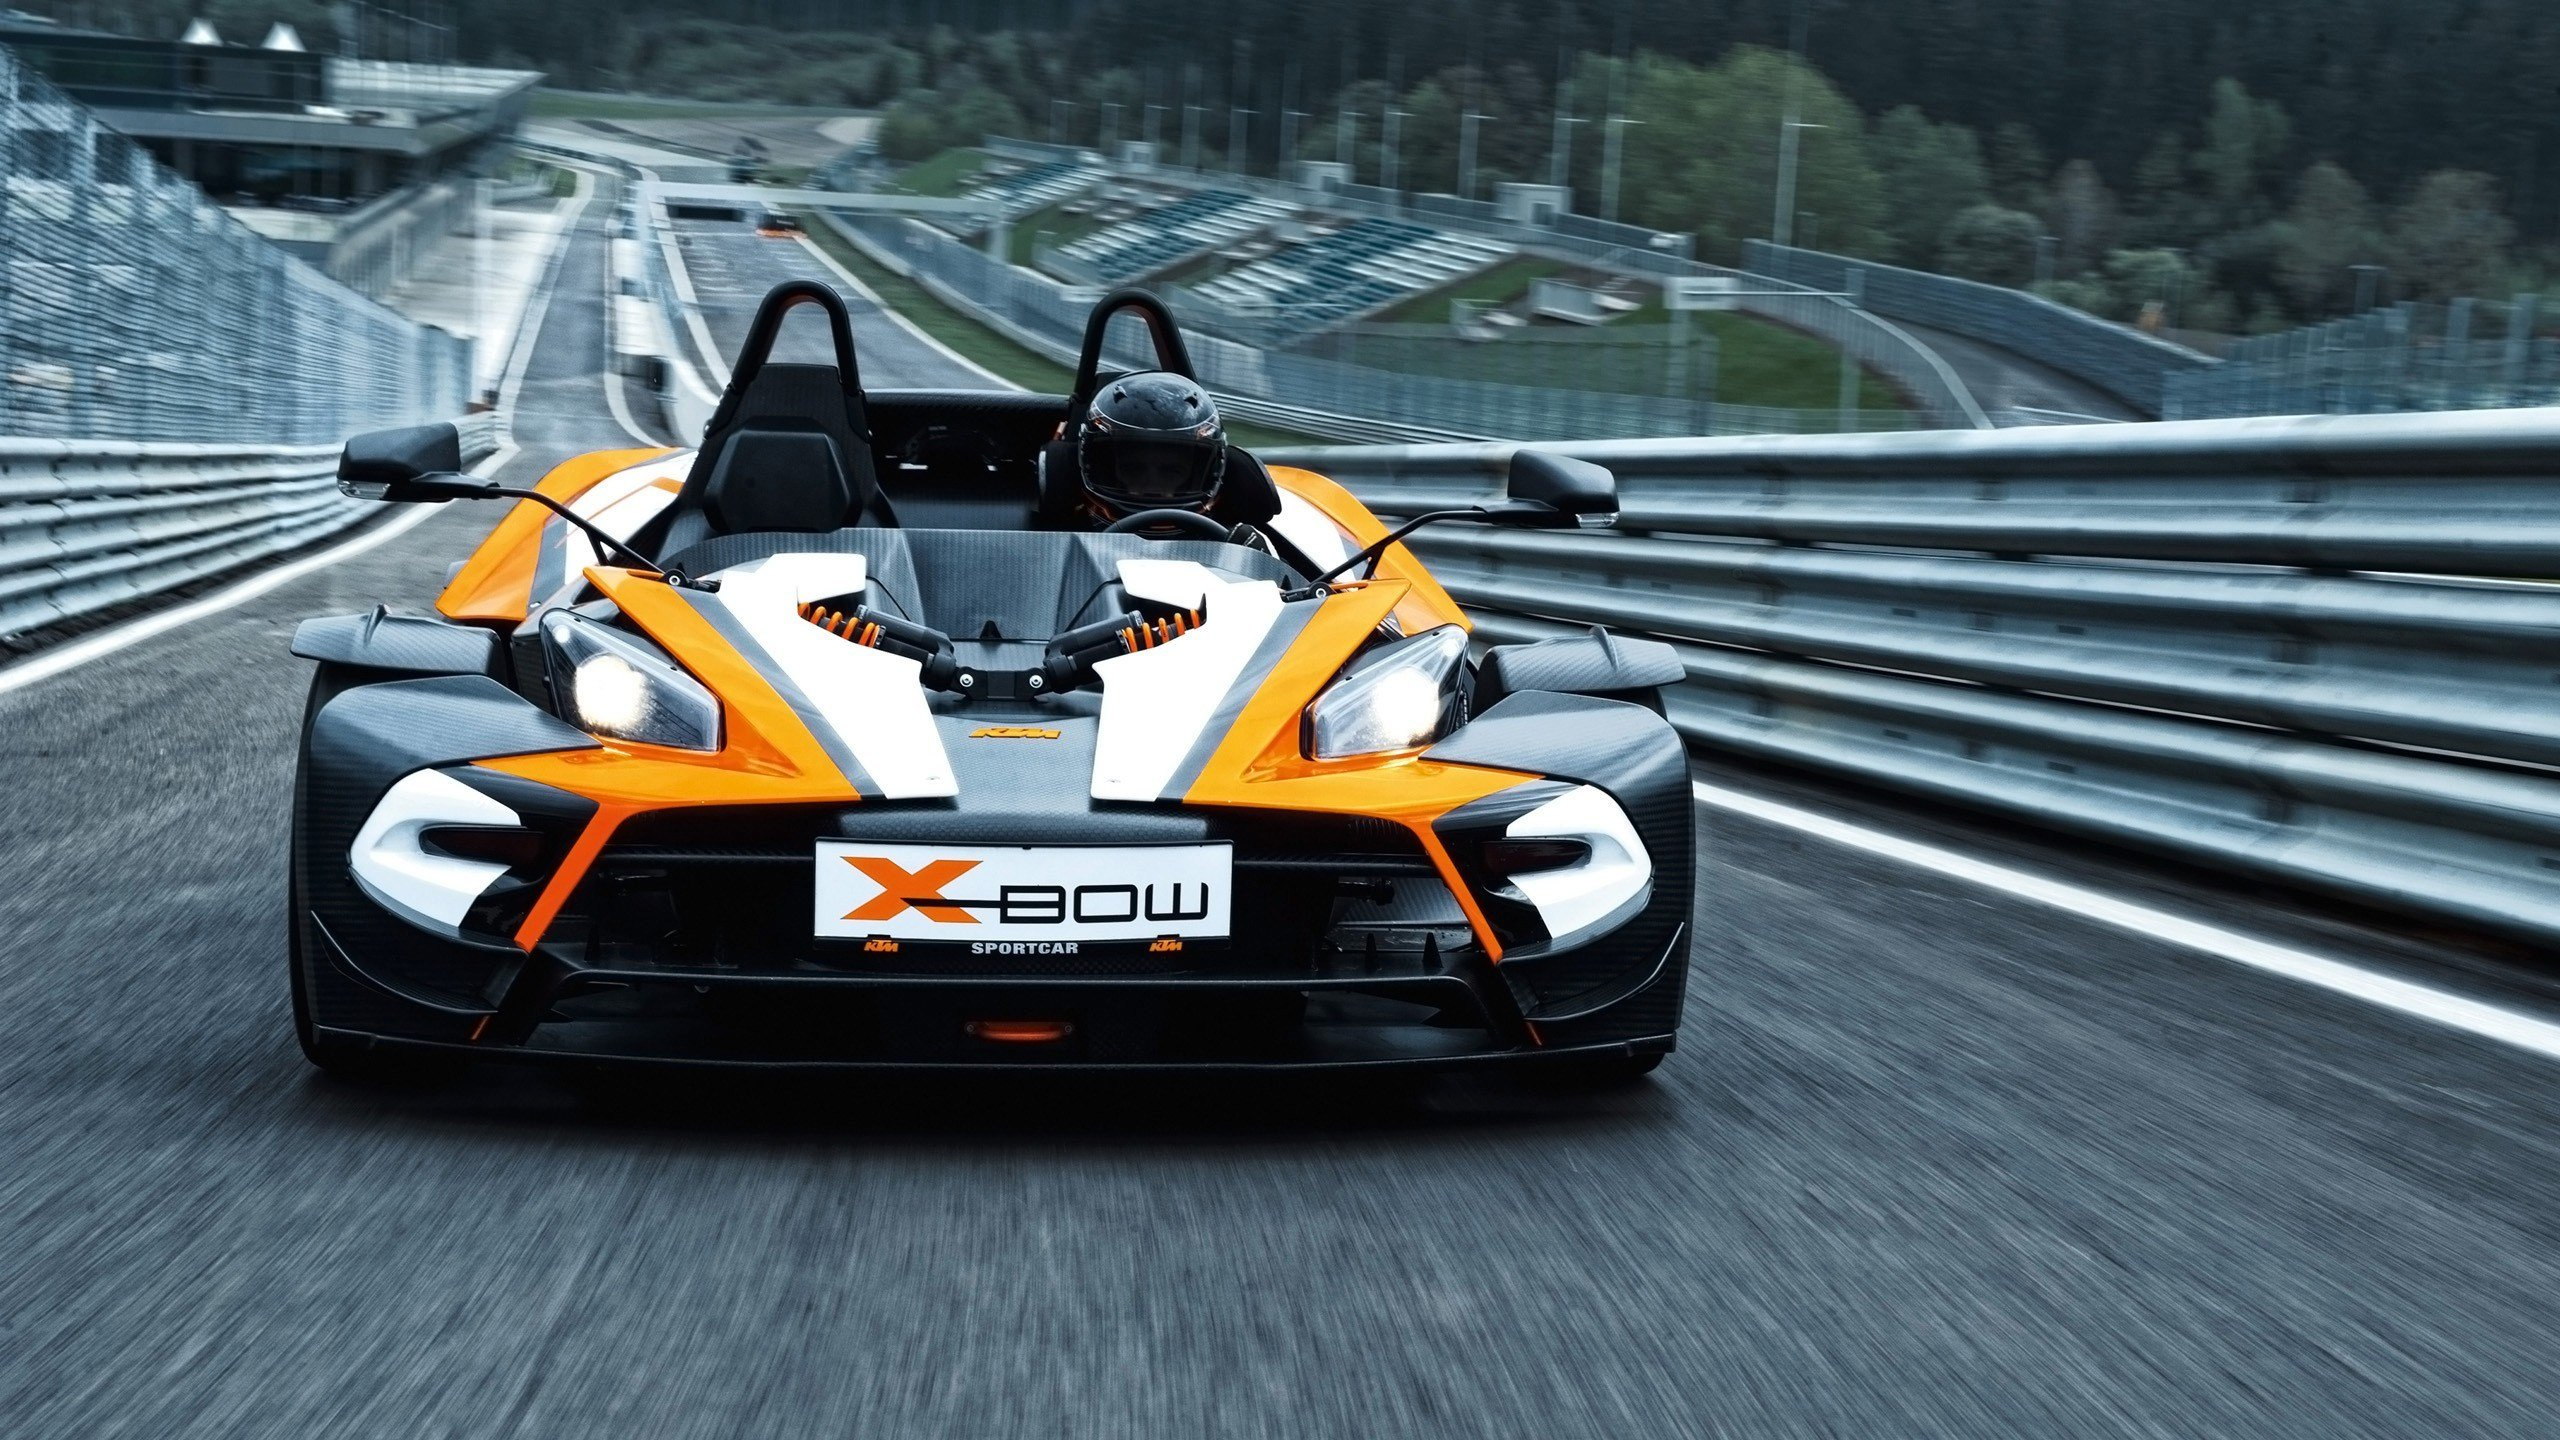 New 2014 Ktm X Bow R Wallpaper Hd Car Wallpapers Id 4176 On This Month